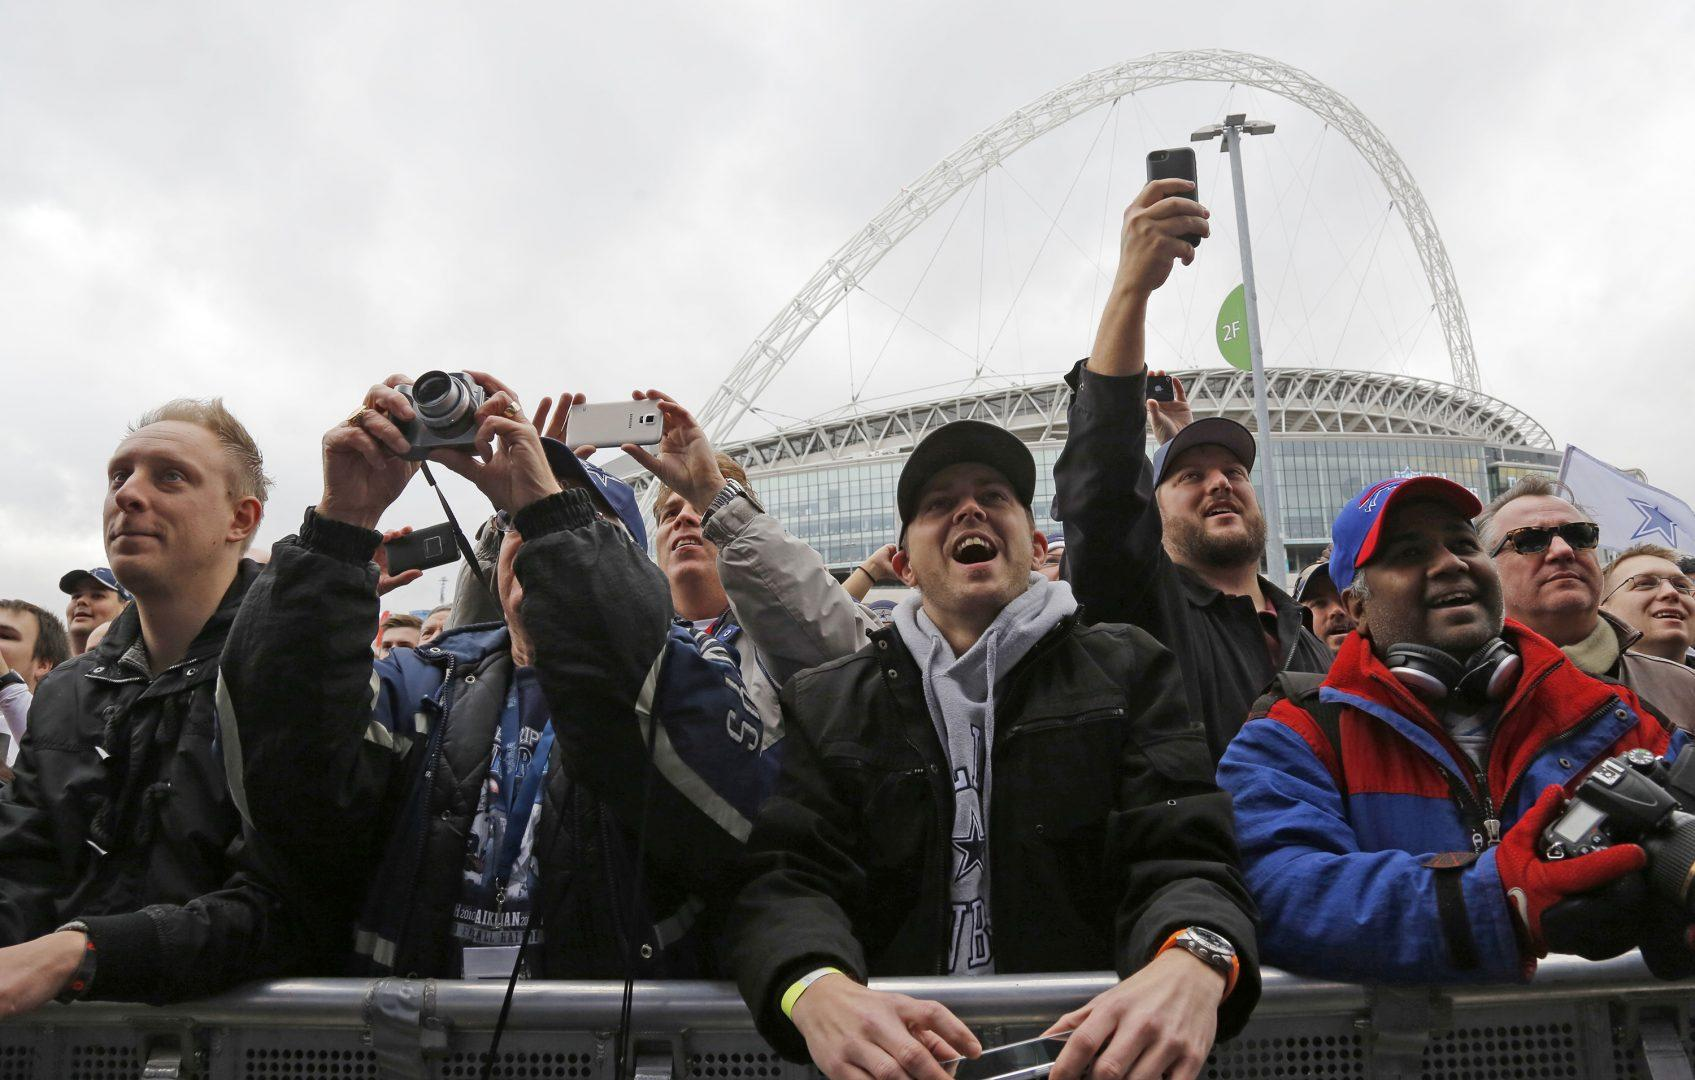 The NFL's Expansion into England and What it Means